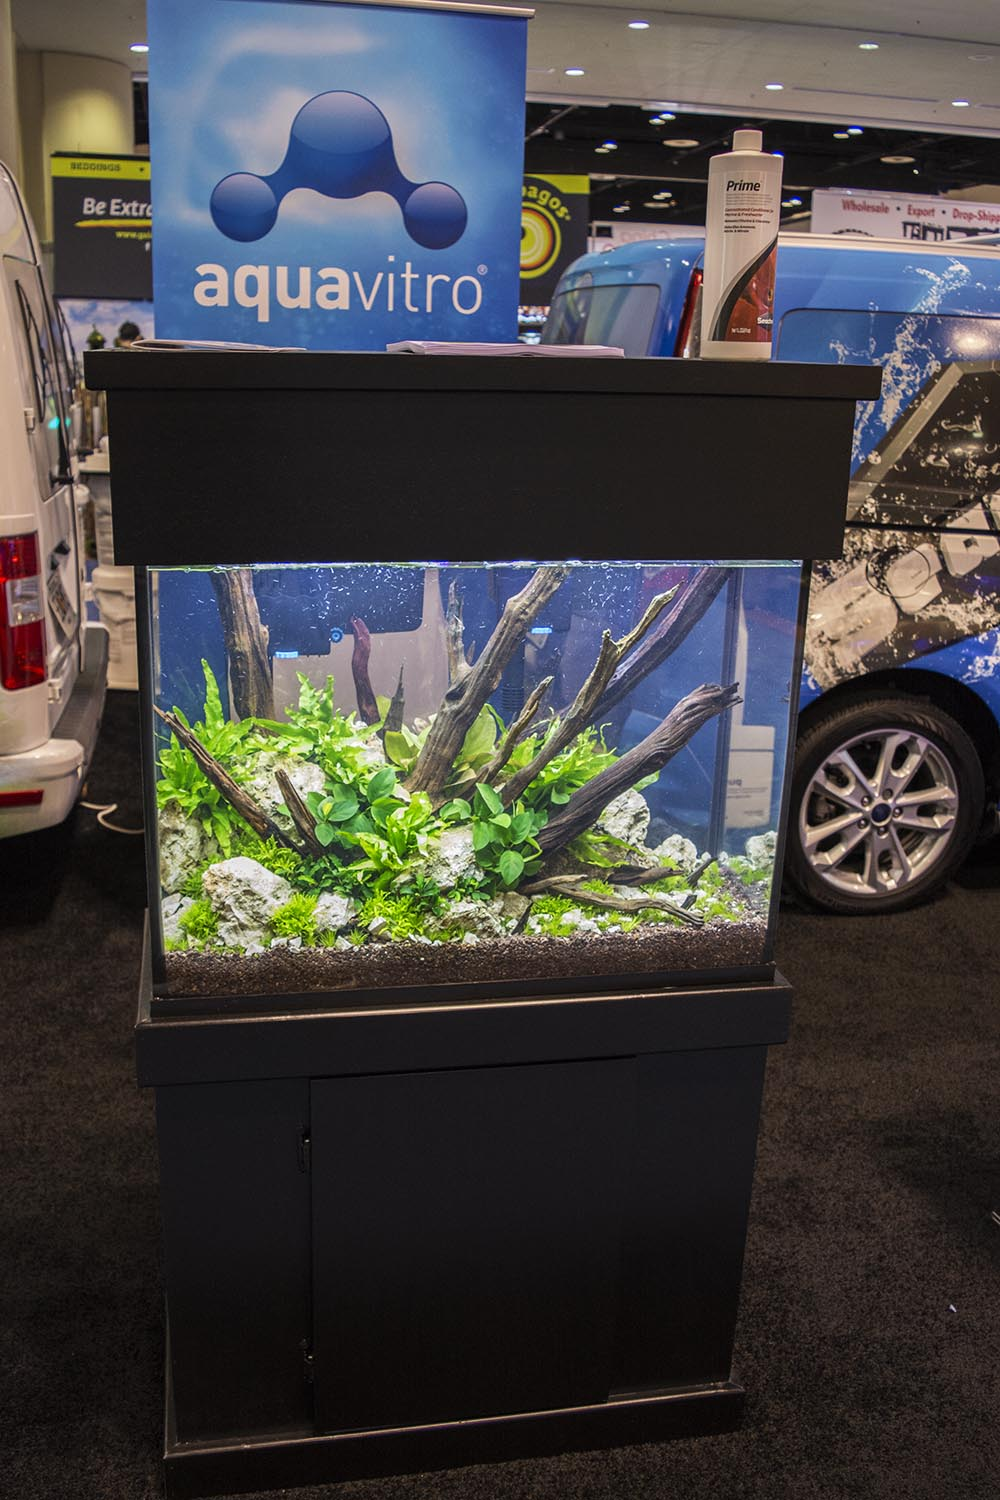 Seachem Laboratories announced some big additions to their freshwater, planted-tank-focused Aquavitro line which will now include live tissue cultured plants